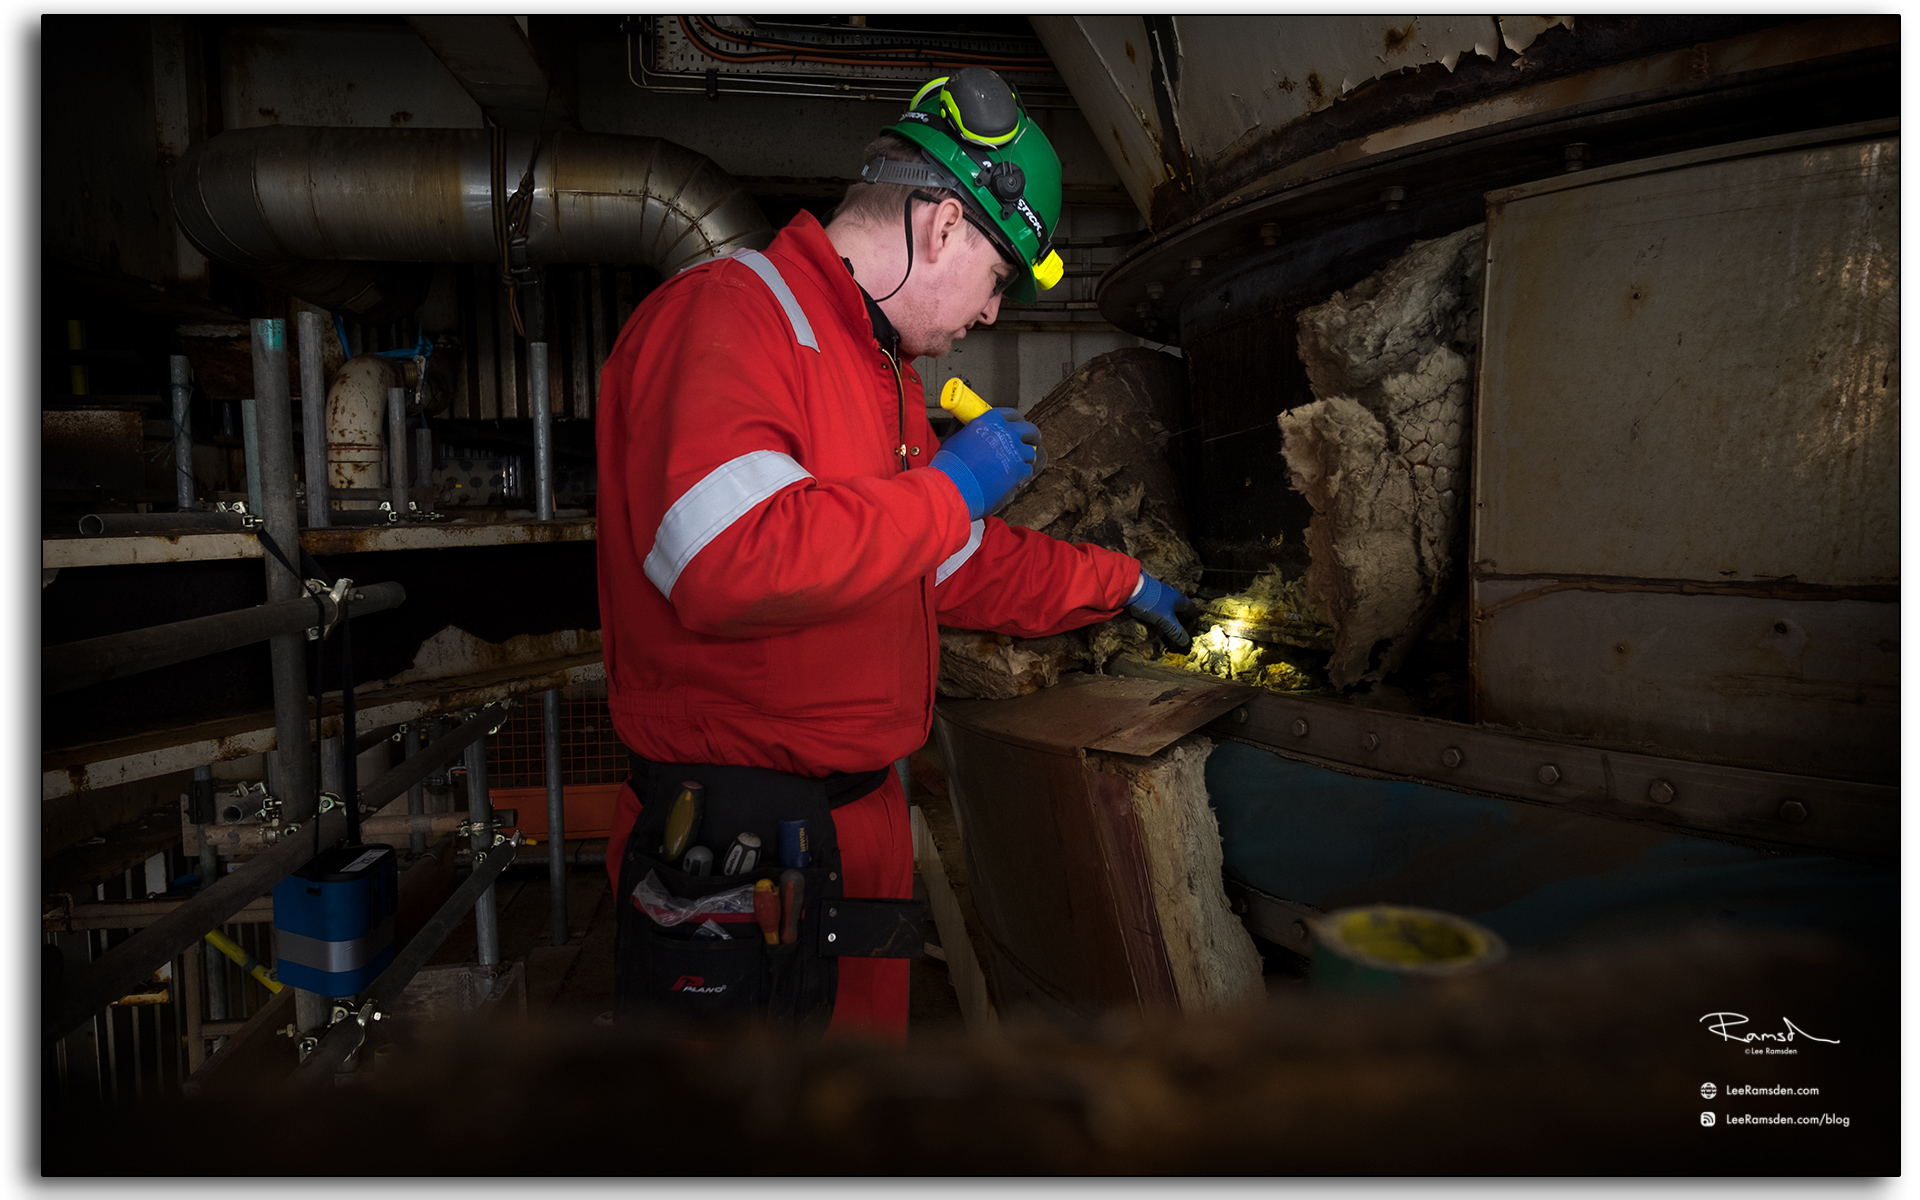 asbestos, survey, chris boyle, environmental essentials, rockwall, mmf, offshore, inspection, north sea, oil and gas